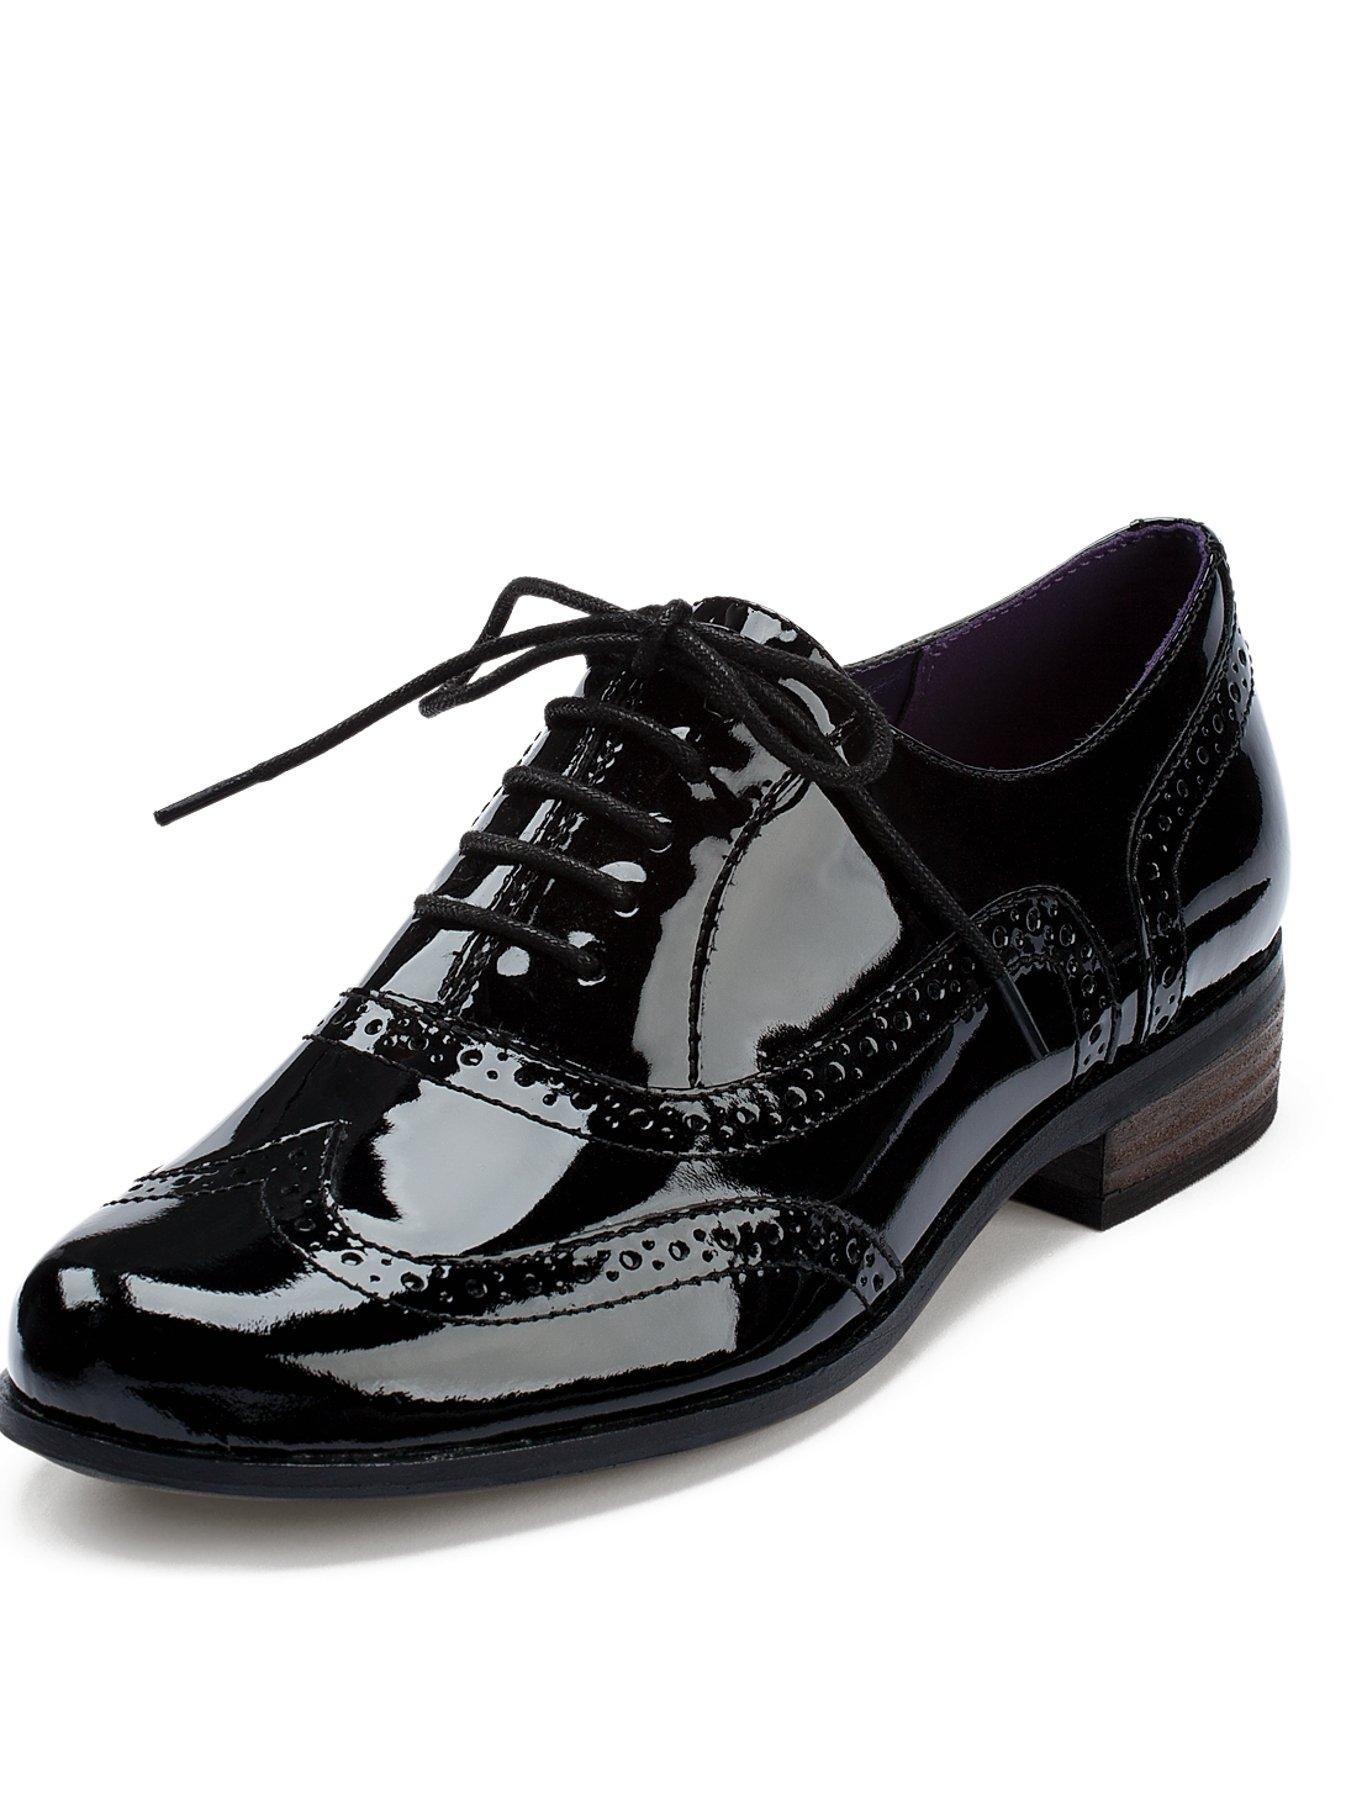 2ae6e41fd Cost Clarks Hamble Oak Leather Brogues Womens Shoes   Boots Womens Footwear  COLOUR-black leather